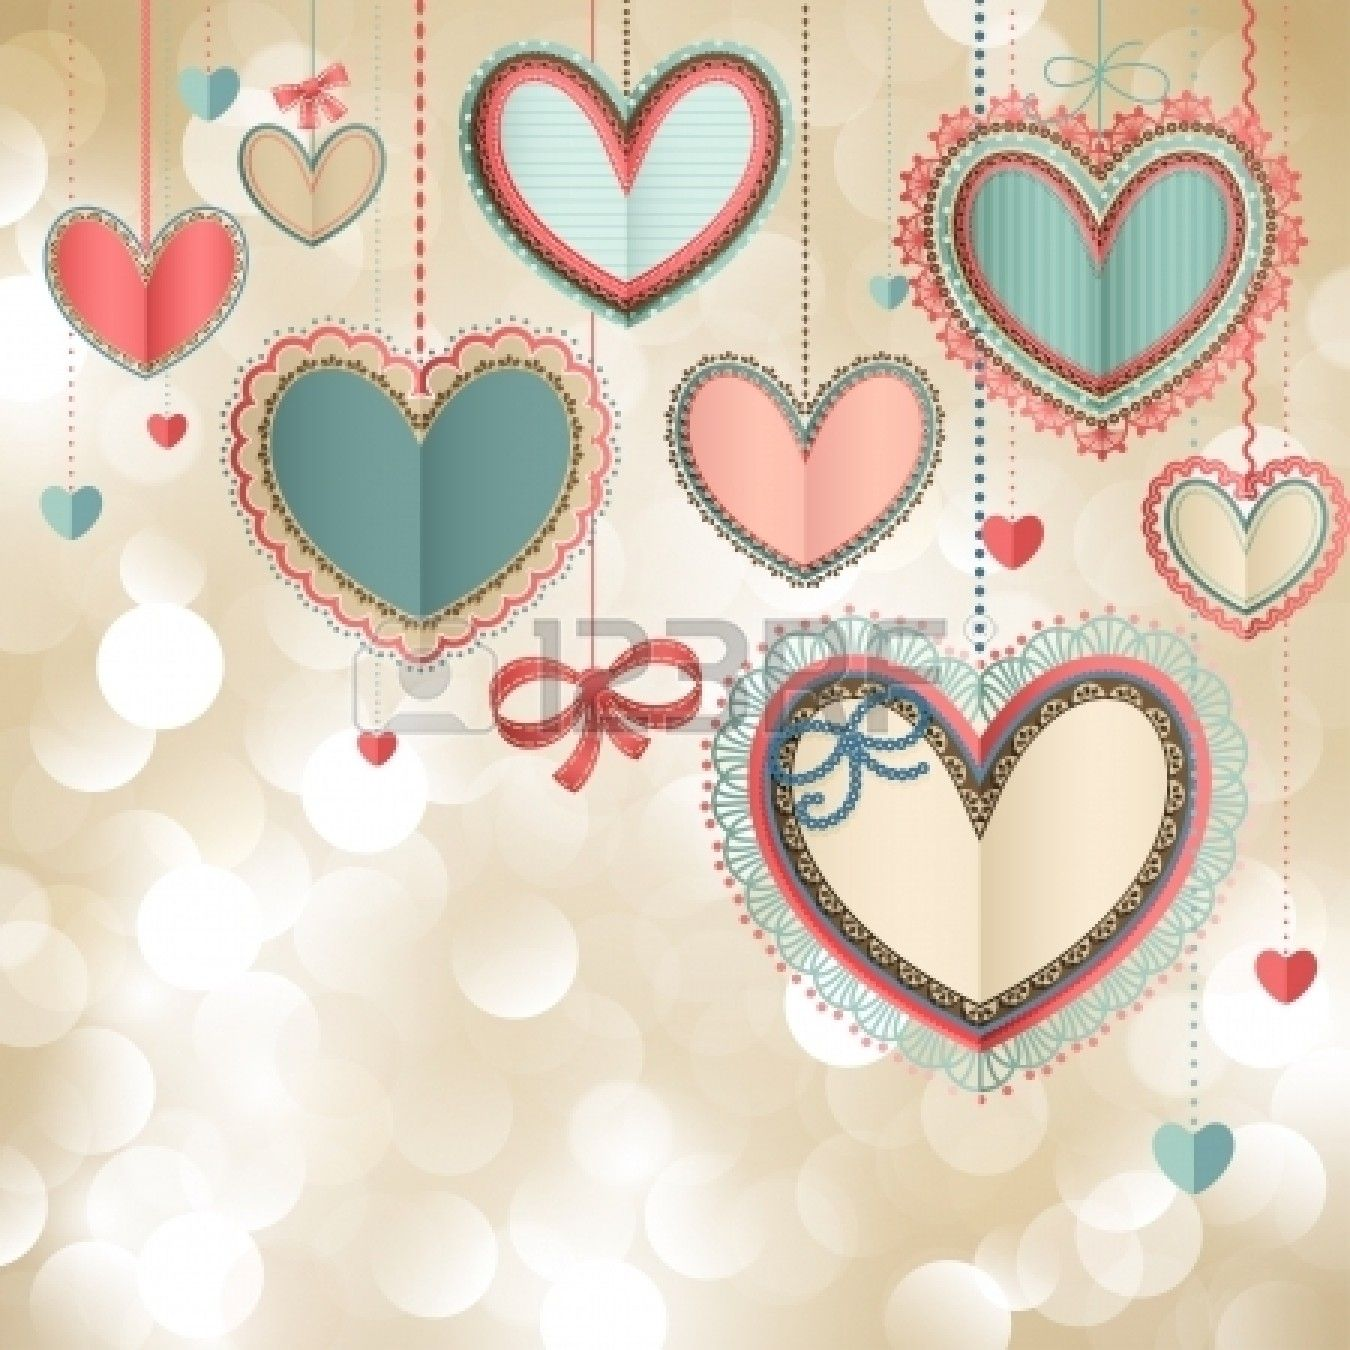 Vintage Heart Photography Images 6 Hd Wallpapers Amagico Hearts